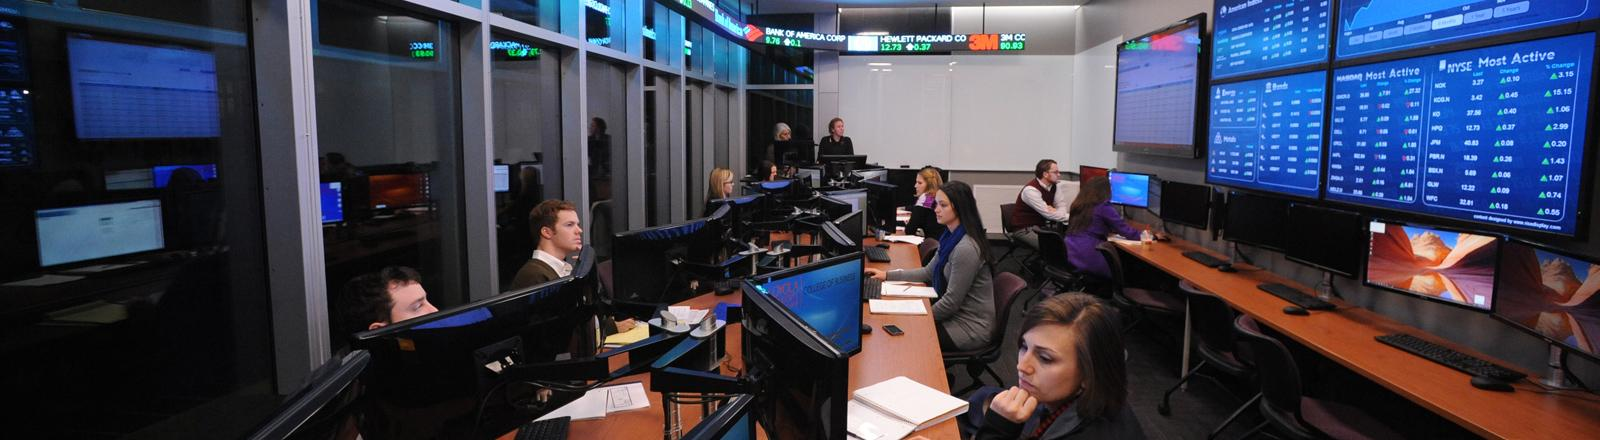 Ayala Stock Trading Room - College of Business - Loyola University New Orleans